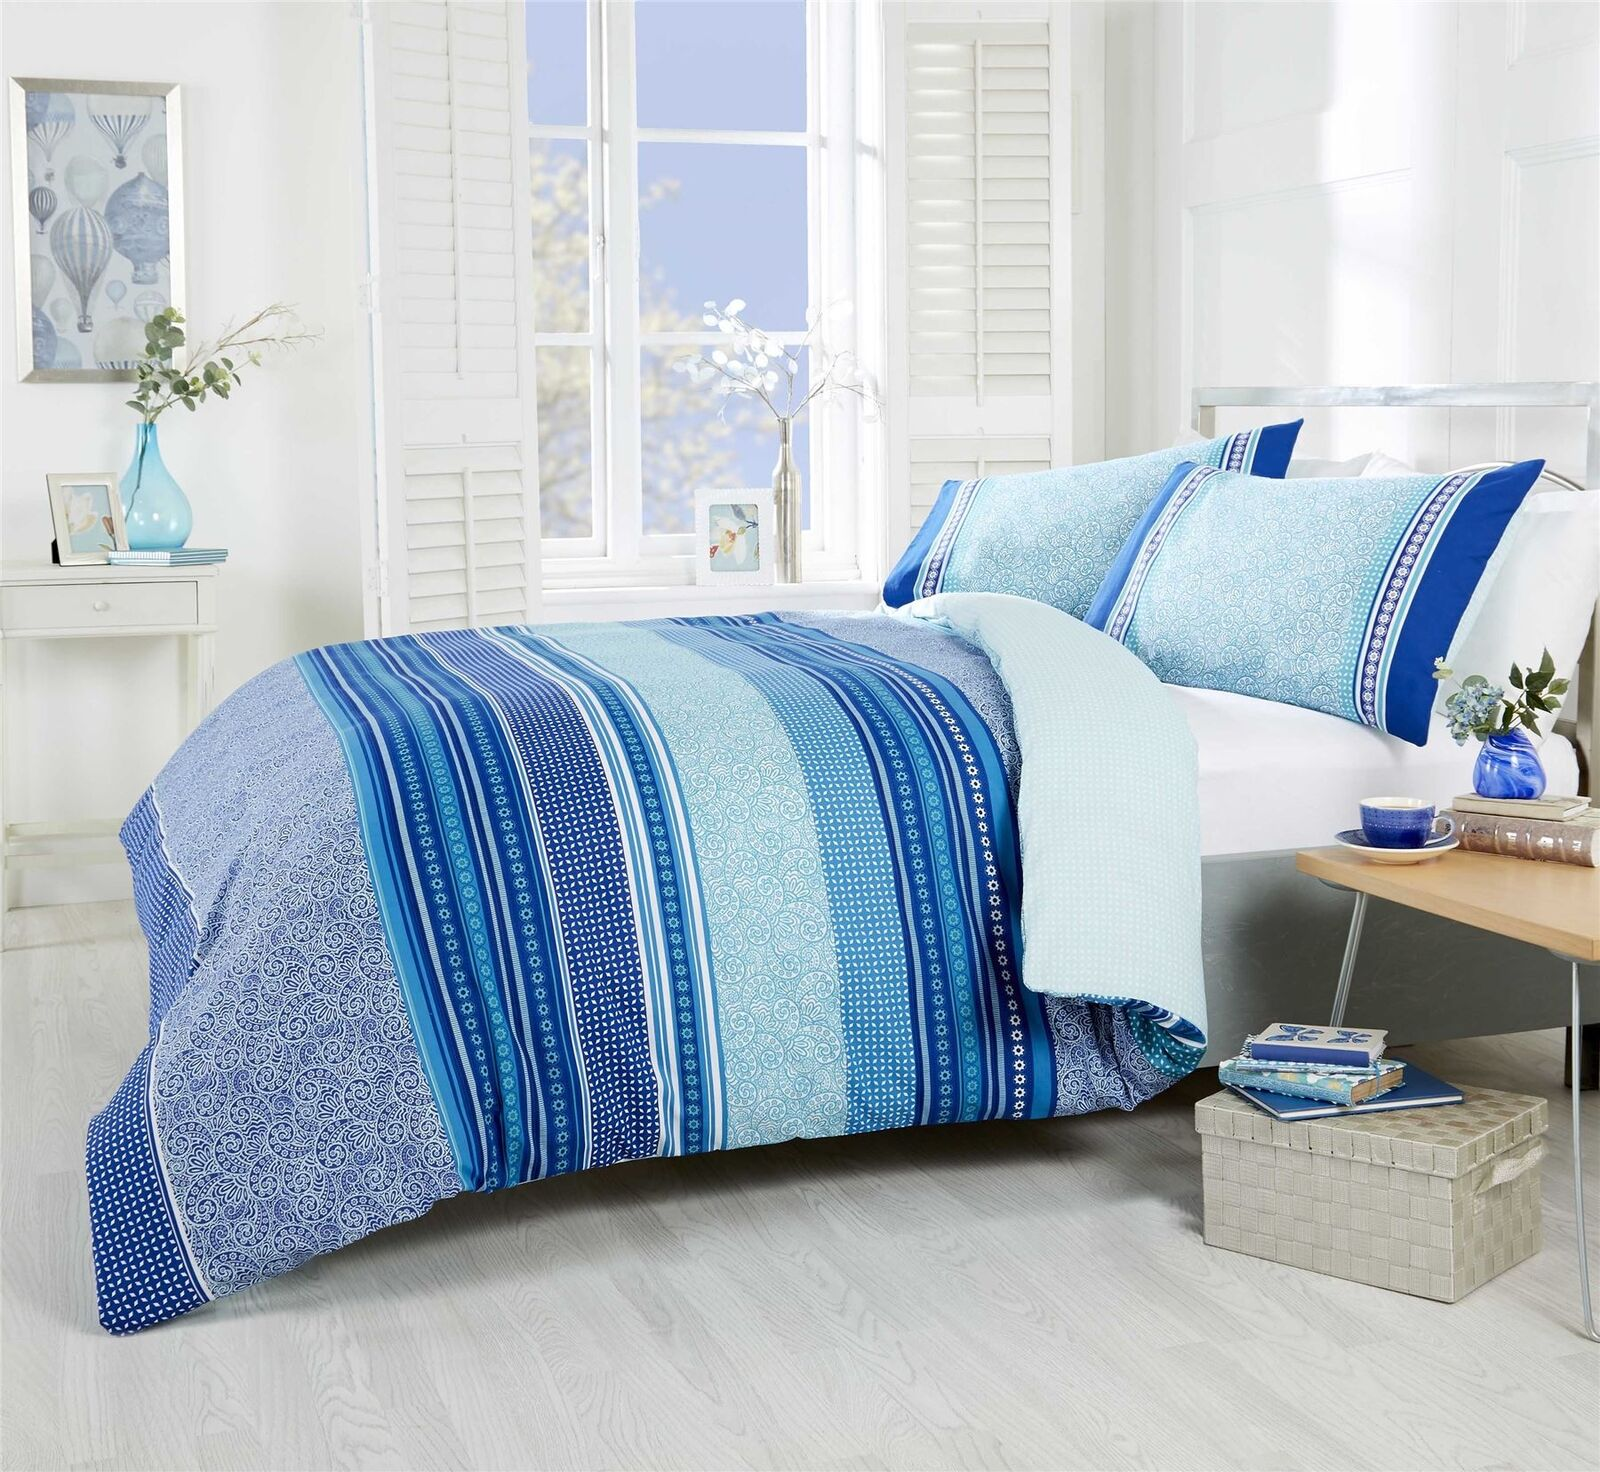 PAISLEY GEOMETRIC STRIPED TEAL blueE COTTON BLEND KING SIZE 6 PIECE BEDDING SET